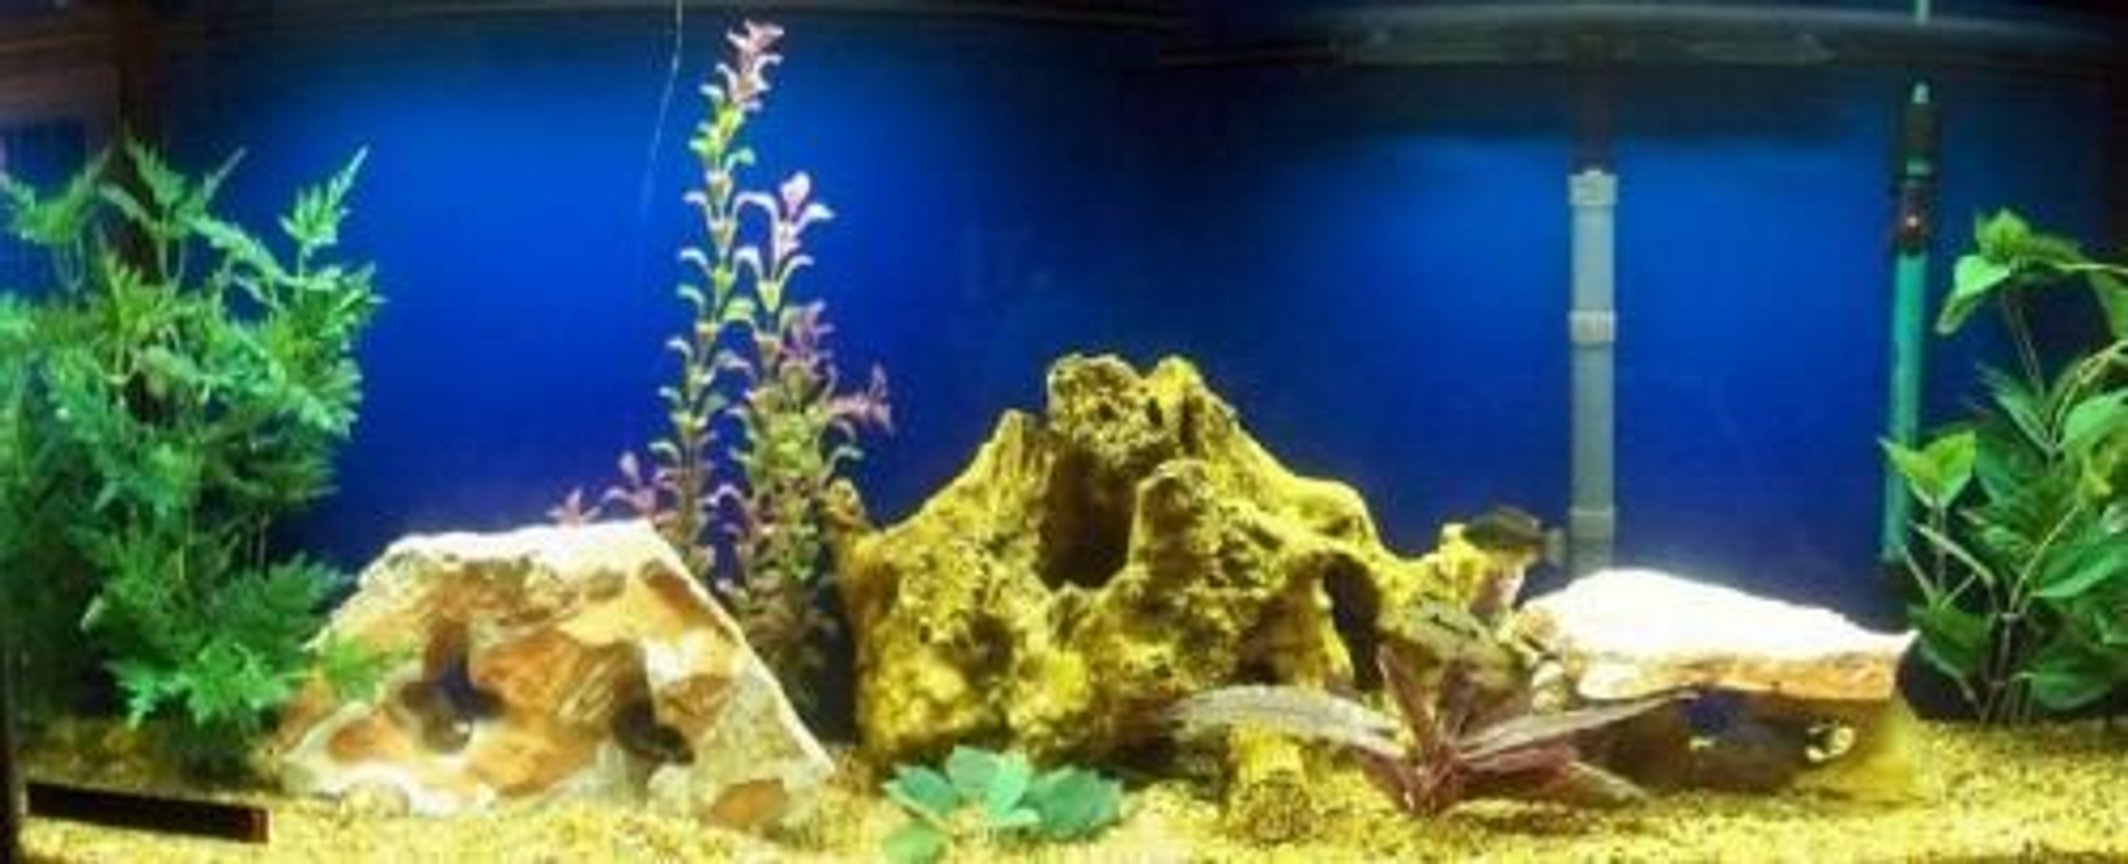 55 gallons freshwater fish tank (mostly fish and non-living decorations) - My new 55 gallon African Cichlid tank.